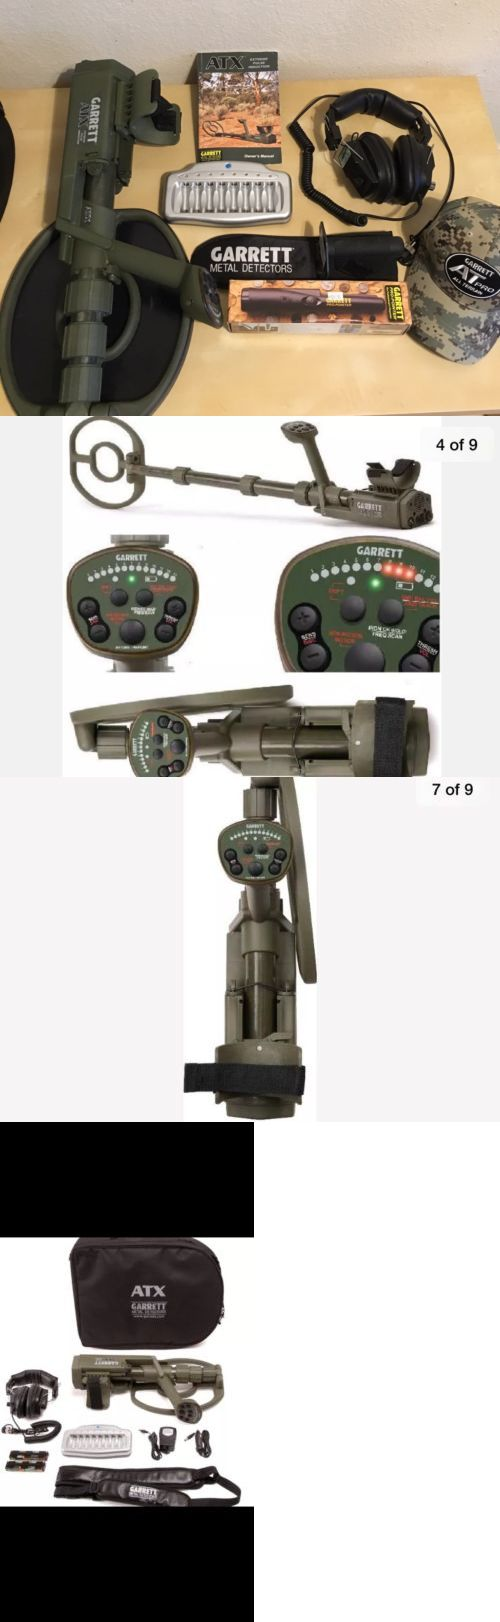 Metal Detectors: Garrett New Atx Extreme Pulse Induction Relic Beach Gold Metal Detector -> BUY IT NOW ONLY: $1800.0 on eBay!